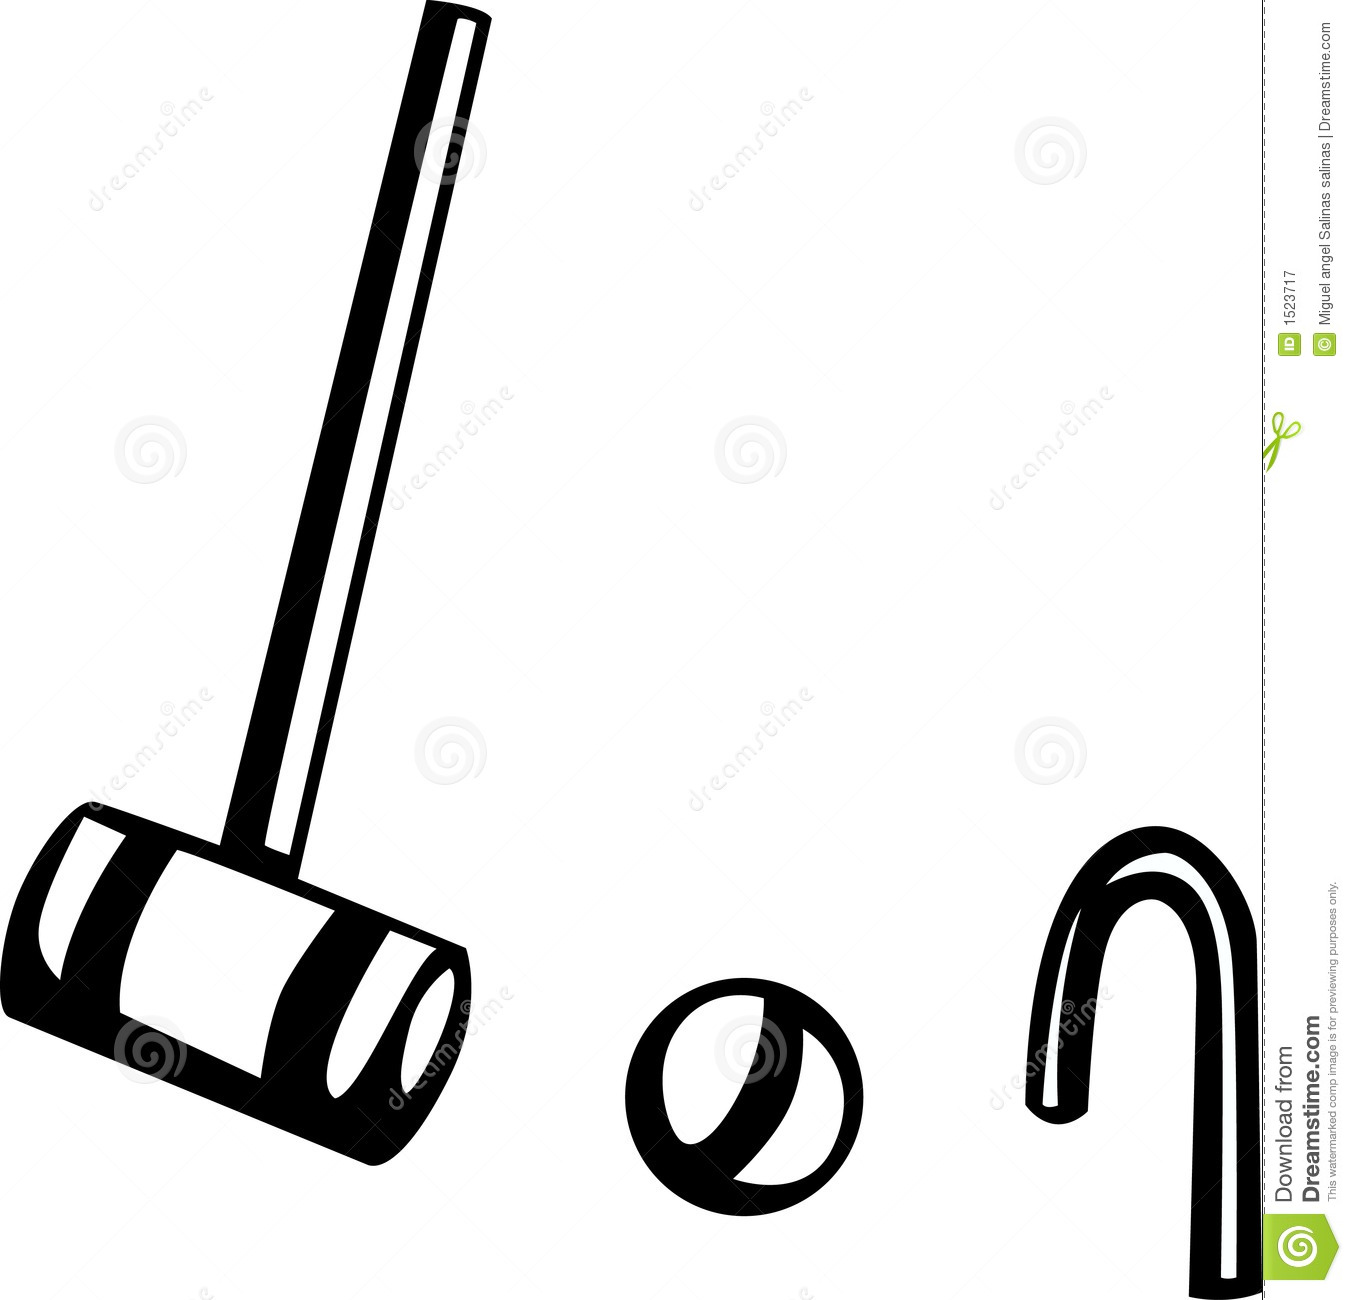 Croquet Game Vector Illustration Royalty Free Stock